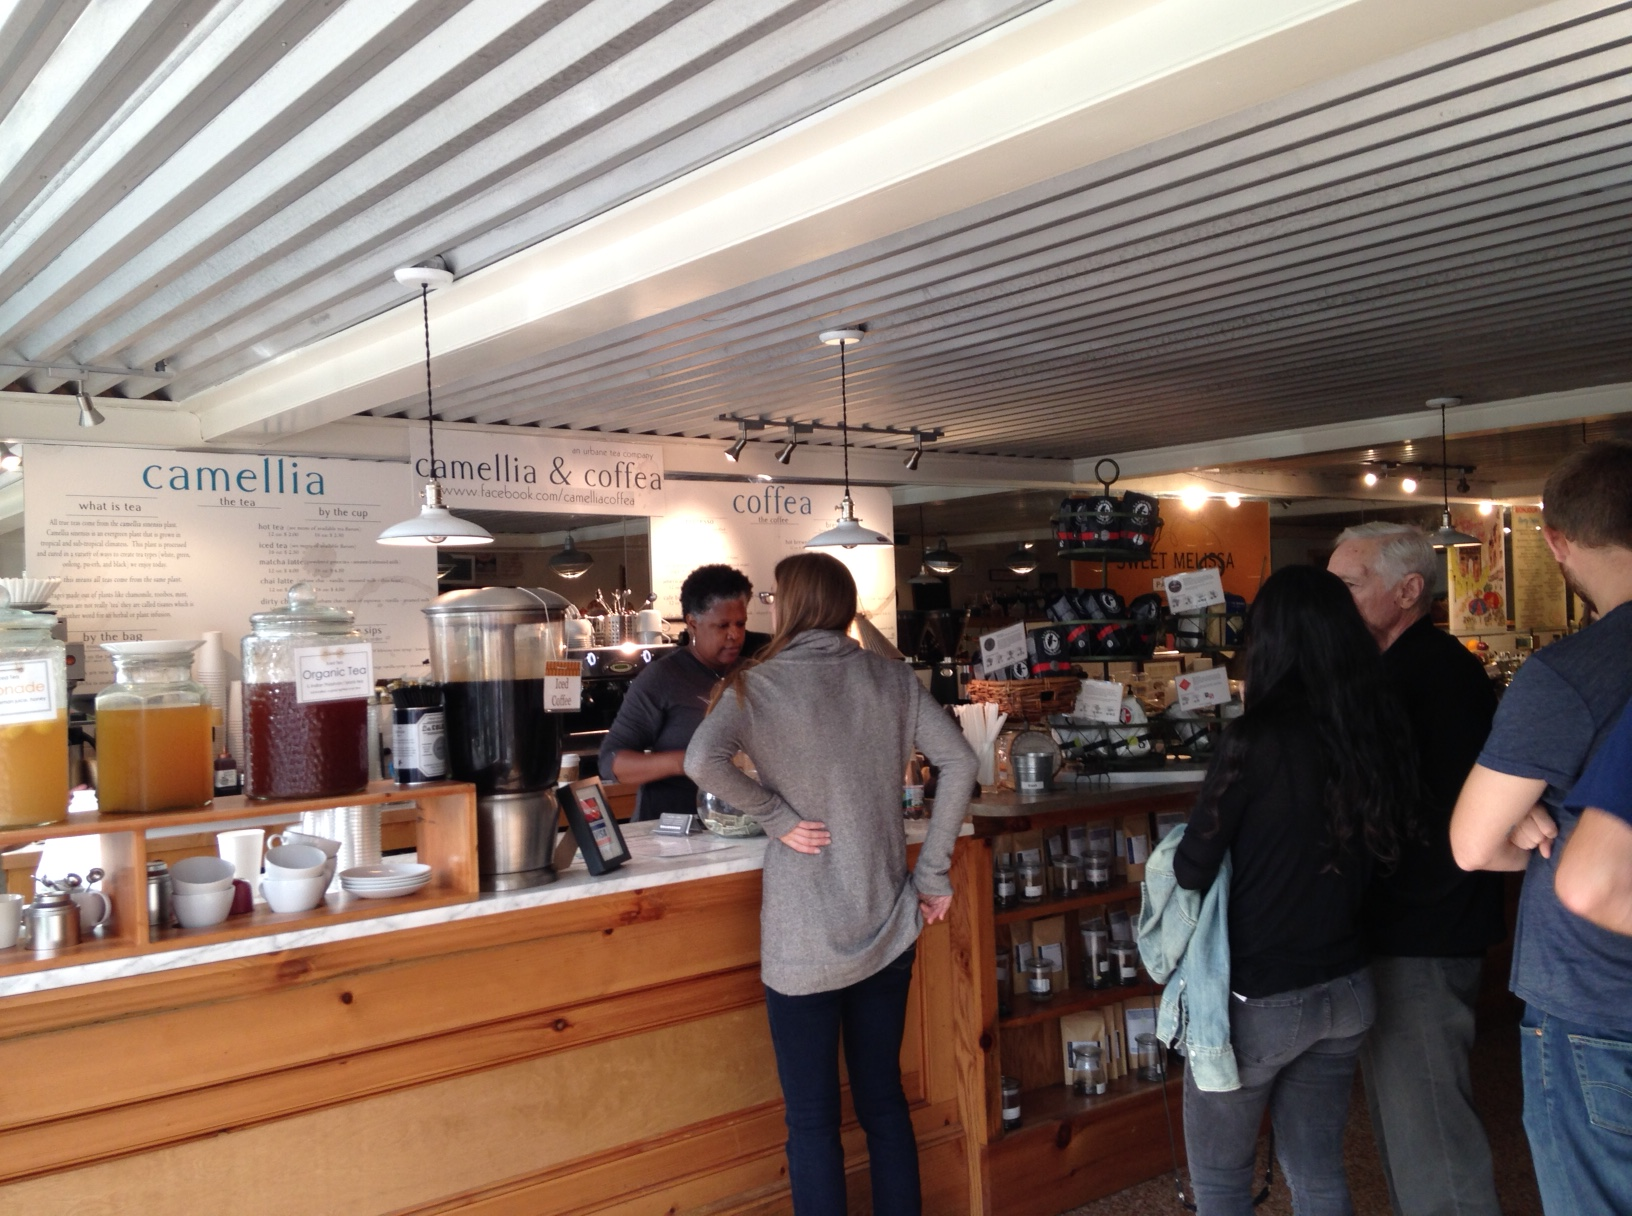 The coffee counter with its La Colombe coffee. The line was rather remarkable today. But it moved quite quickly.